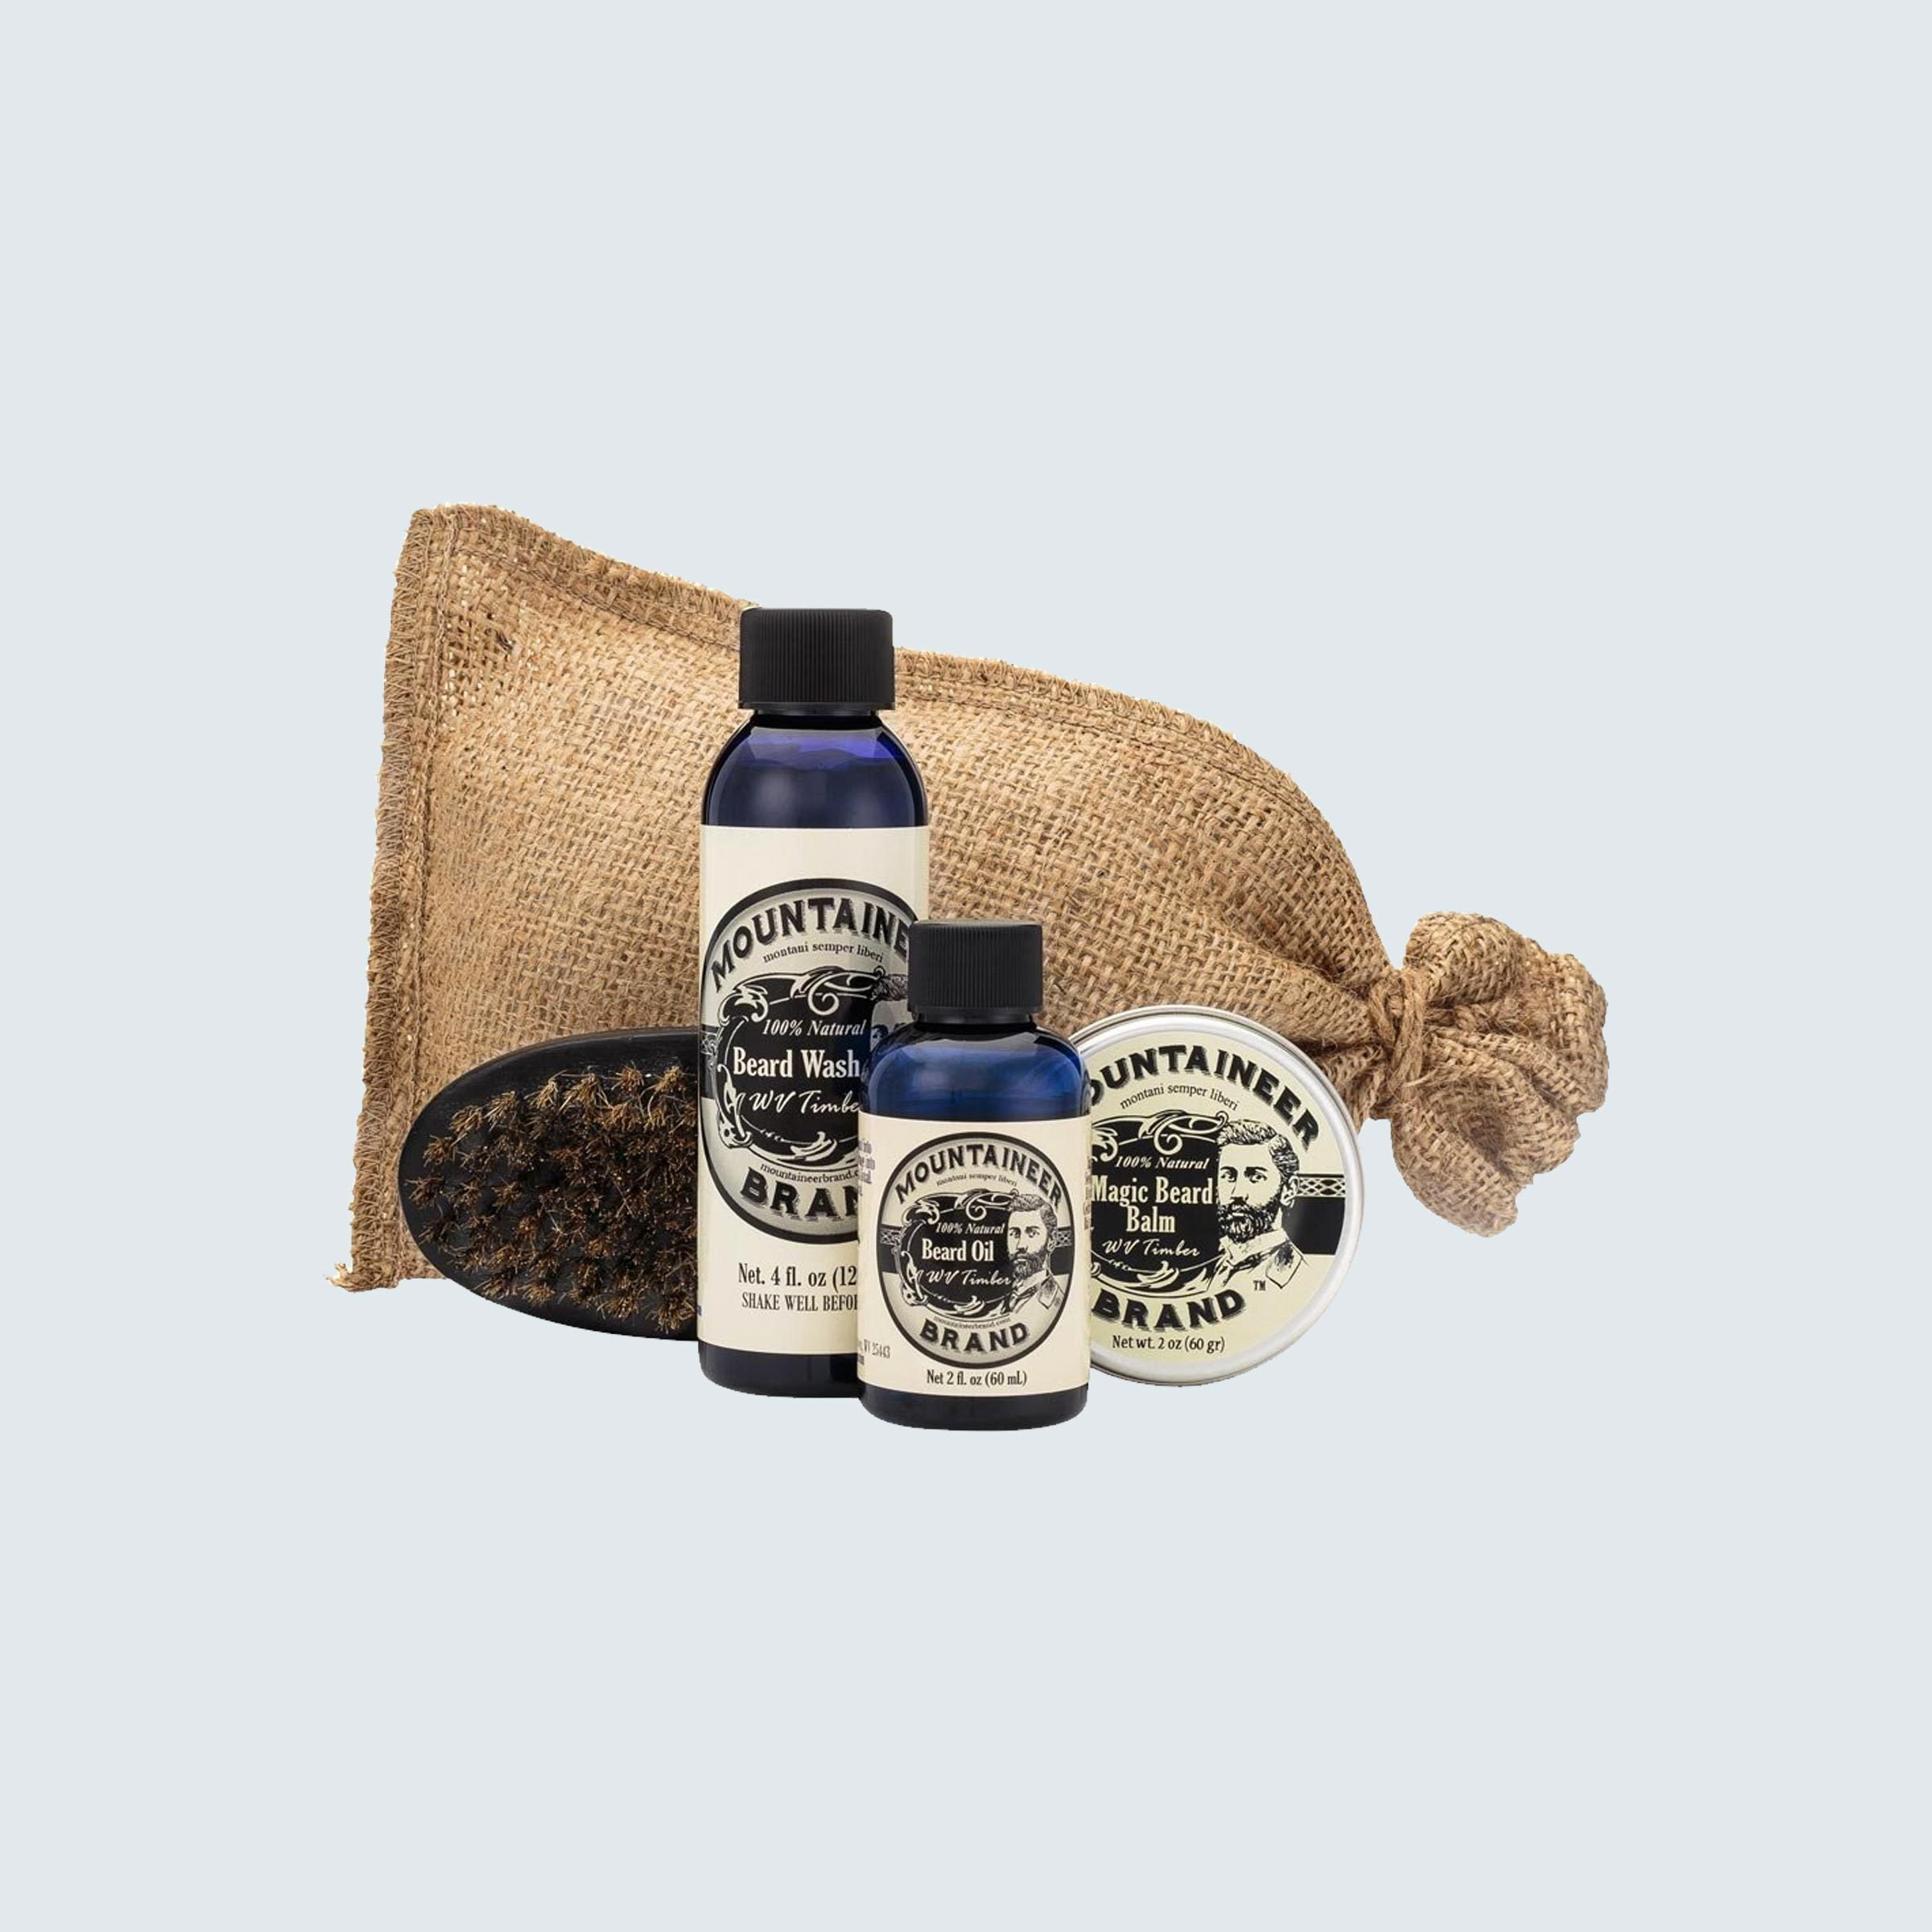 Mountaineer grooming products